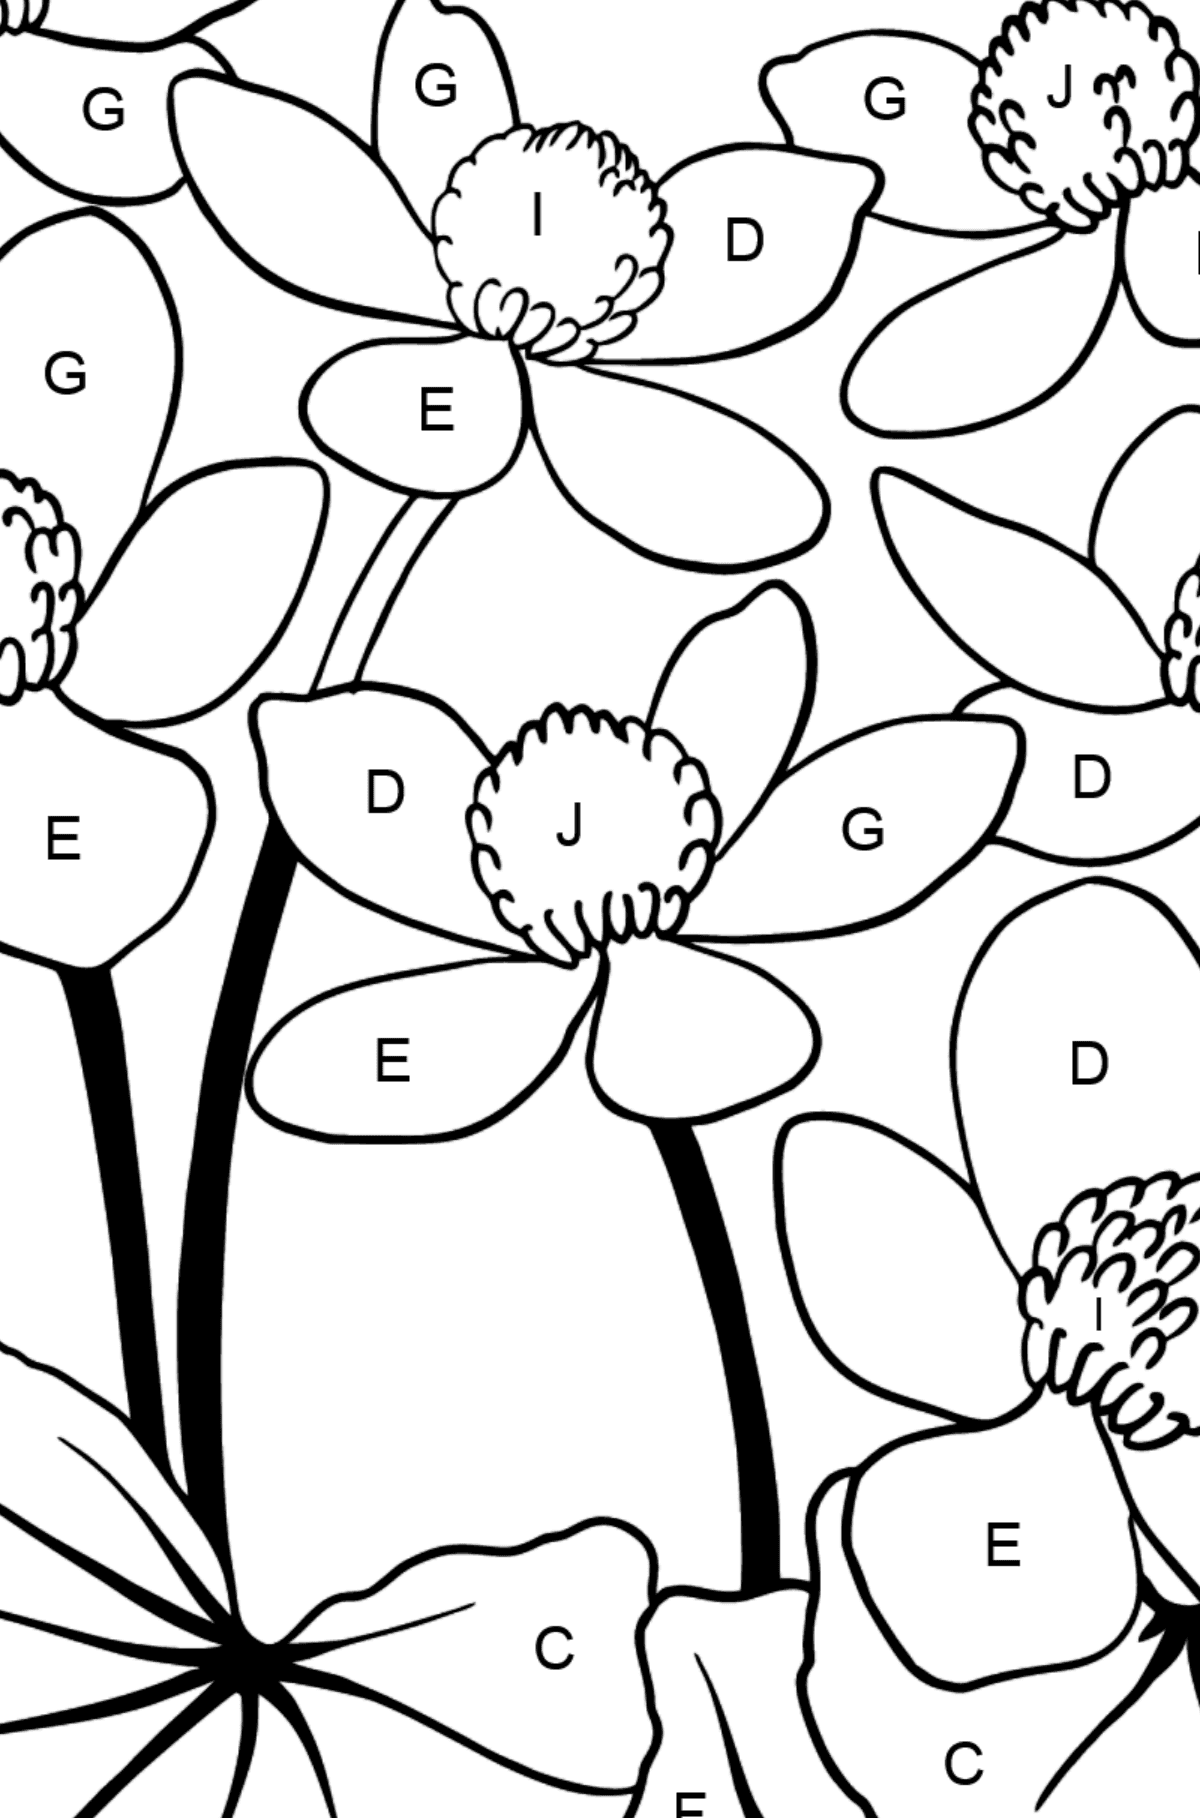 Flower Coloring Page - Marsh Marigold - Coloring by Letters for Kids